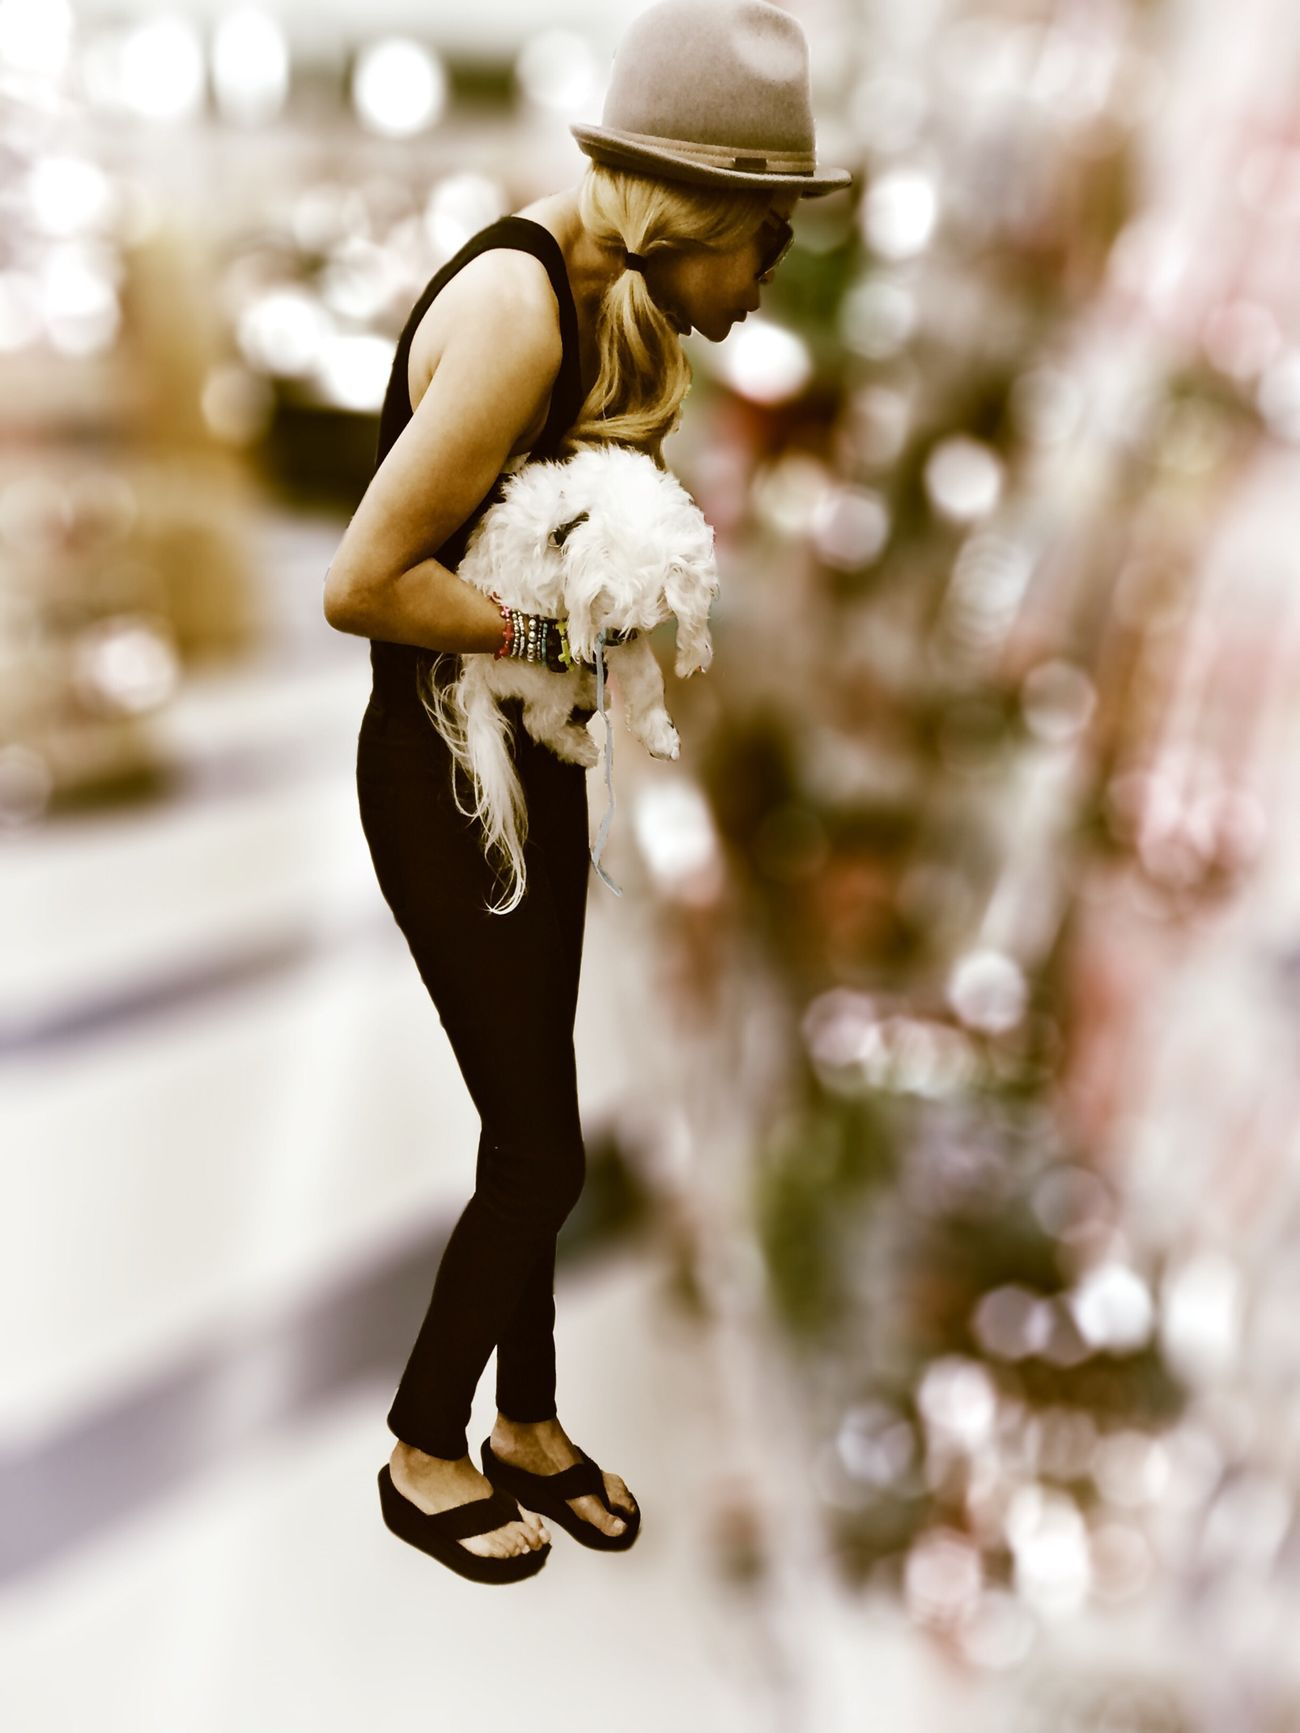 Surrealism Bokeh Street Photography People